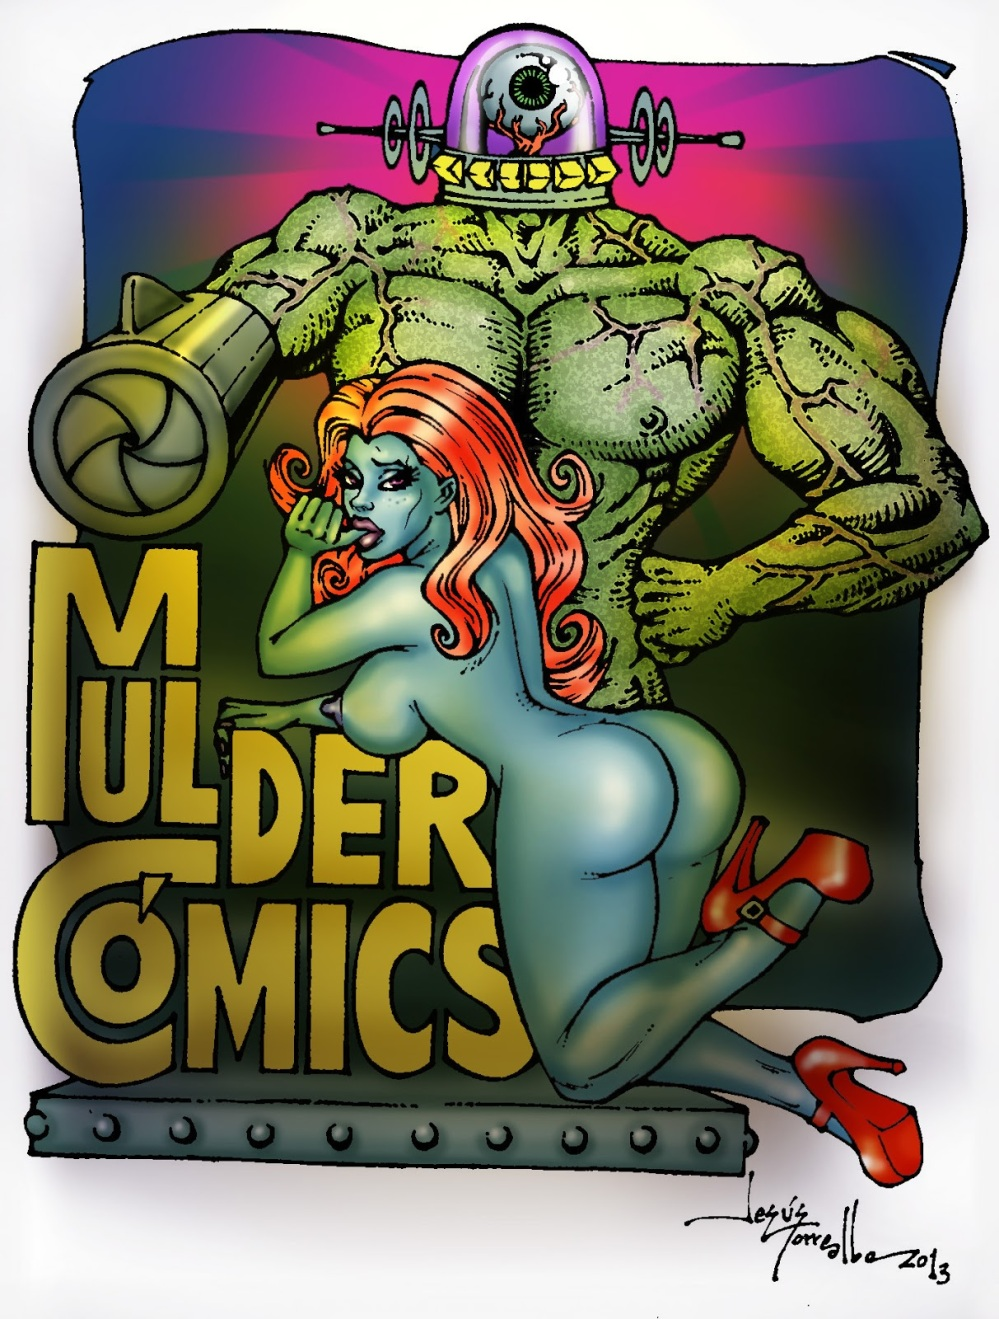 Muldercomics2013-color